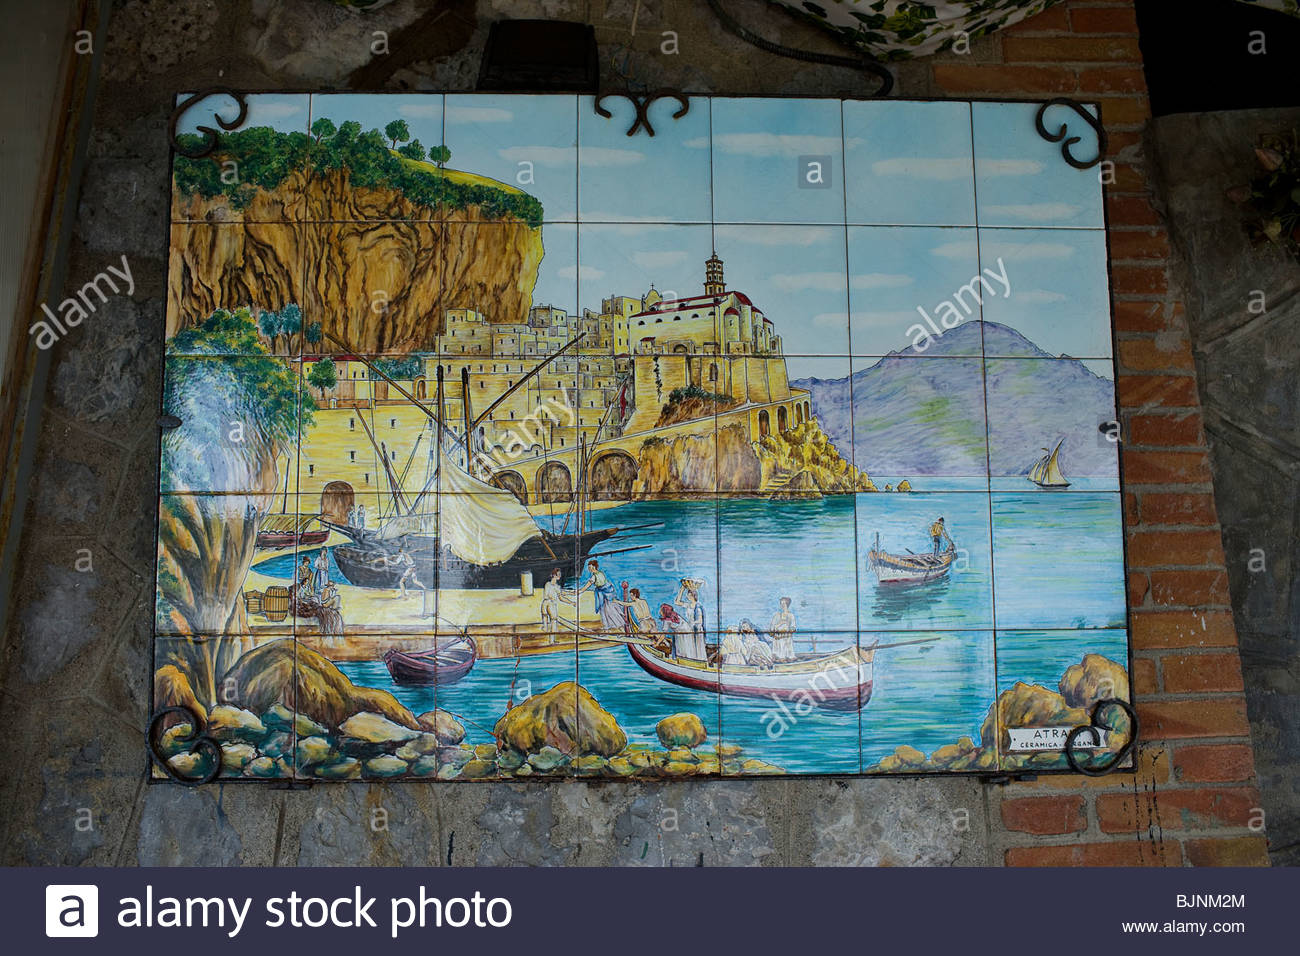 Ceramic tile mural of atrani village in atrani amalfi coast stock ceramic tile mural of atrani village in atrani amalfi coast province of salerno campania italy doublecrazyfo Images